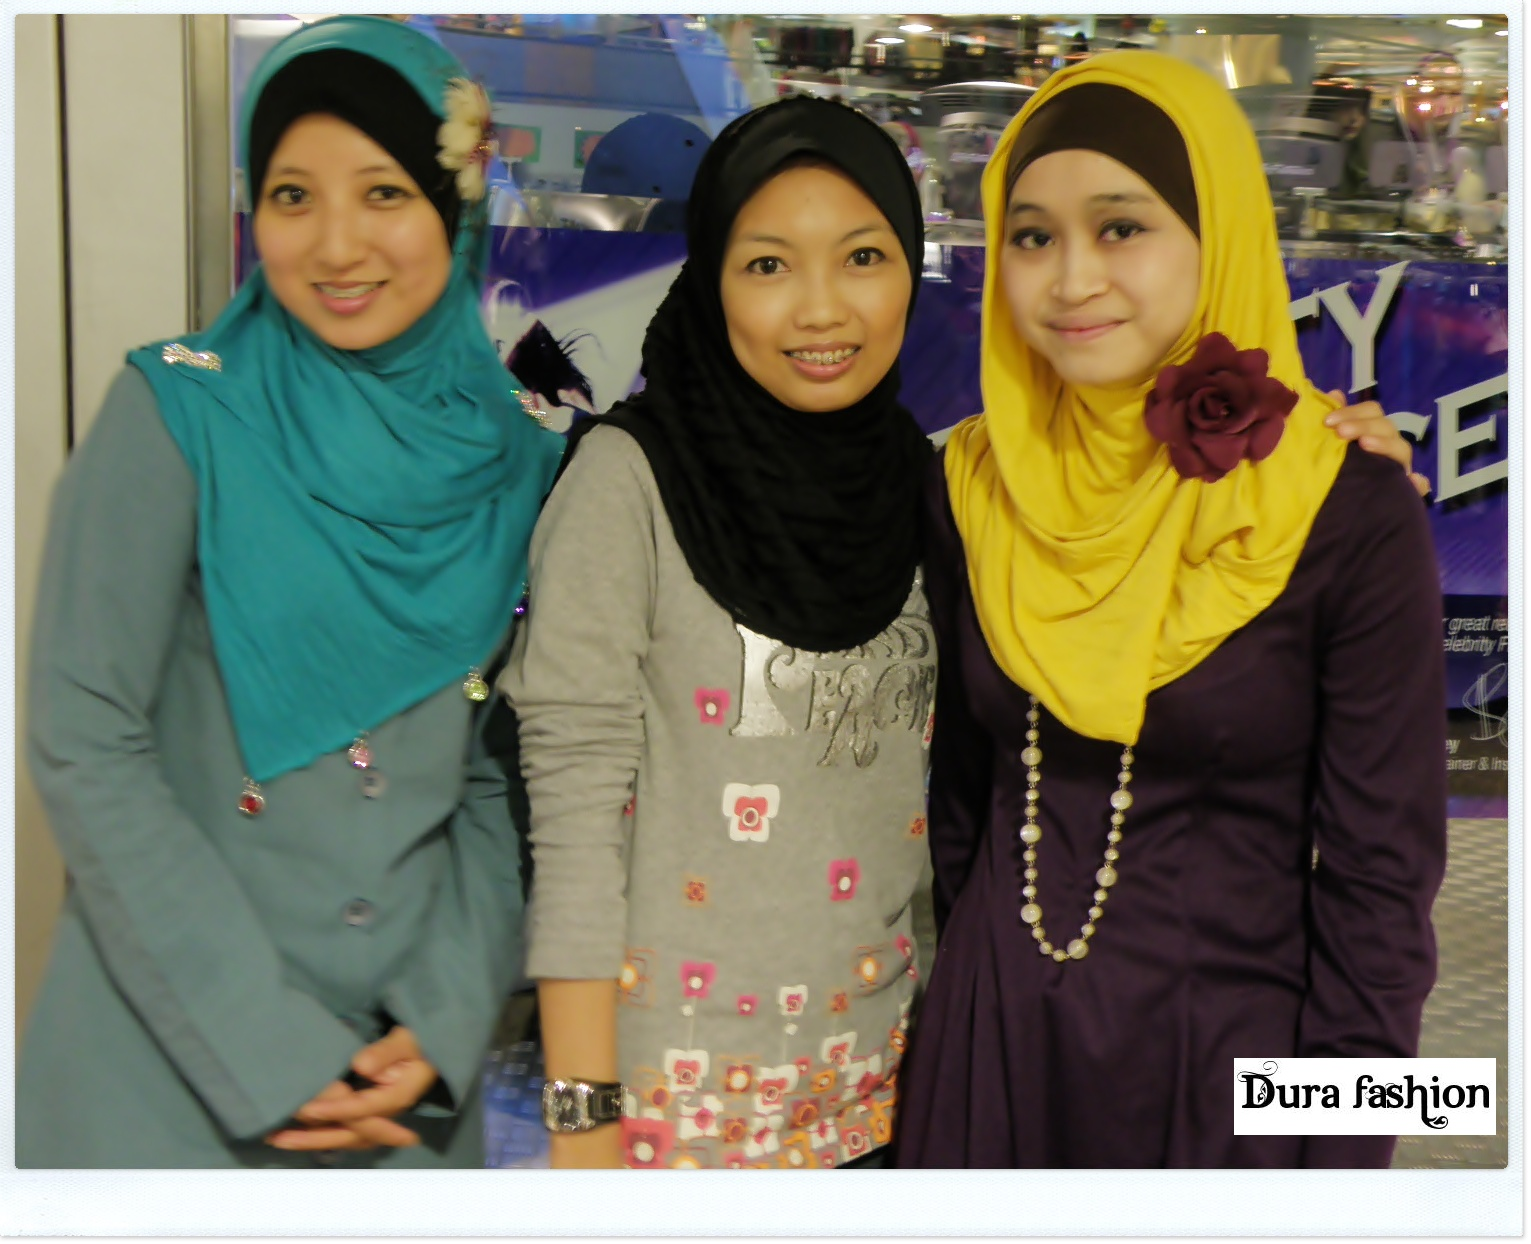 Dura Fashion Booth Moments Fashion Style Muslim